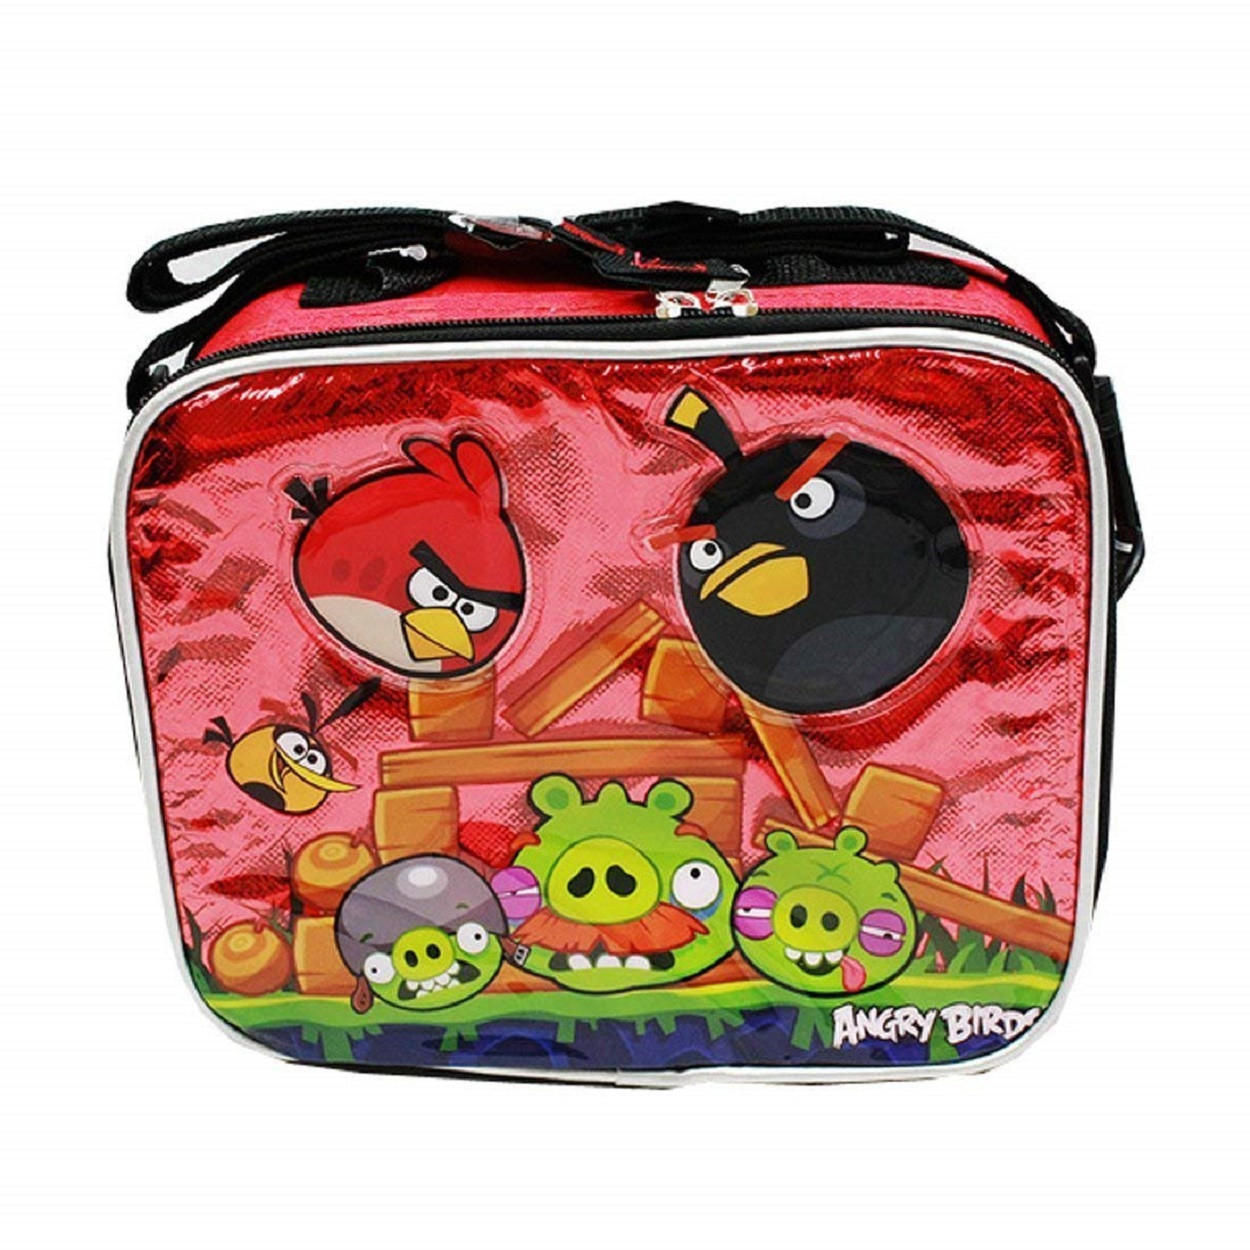 Lunch Box - Angry Birds - Insulated - Red